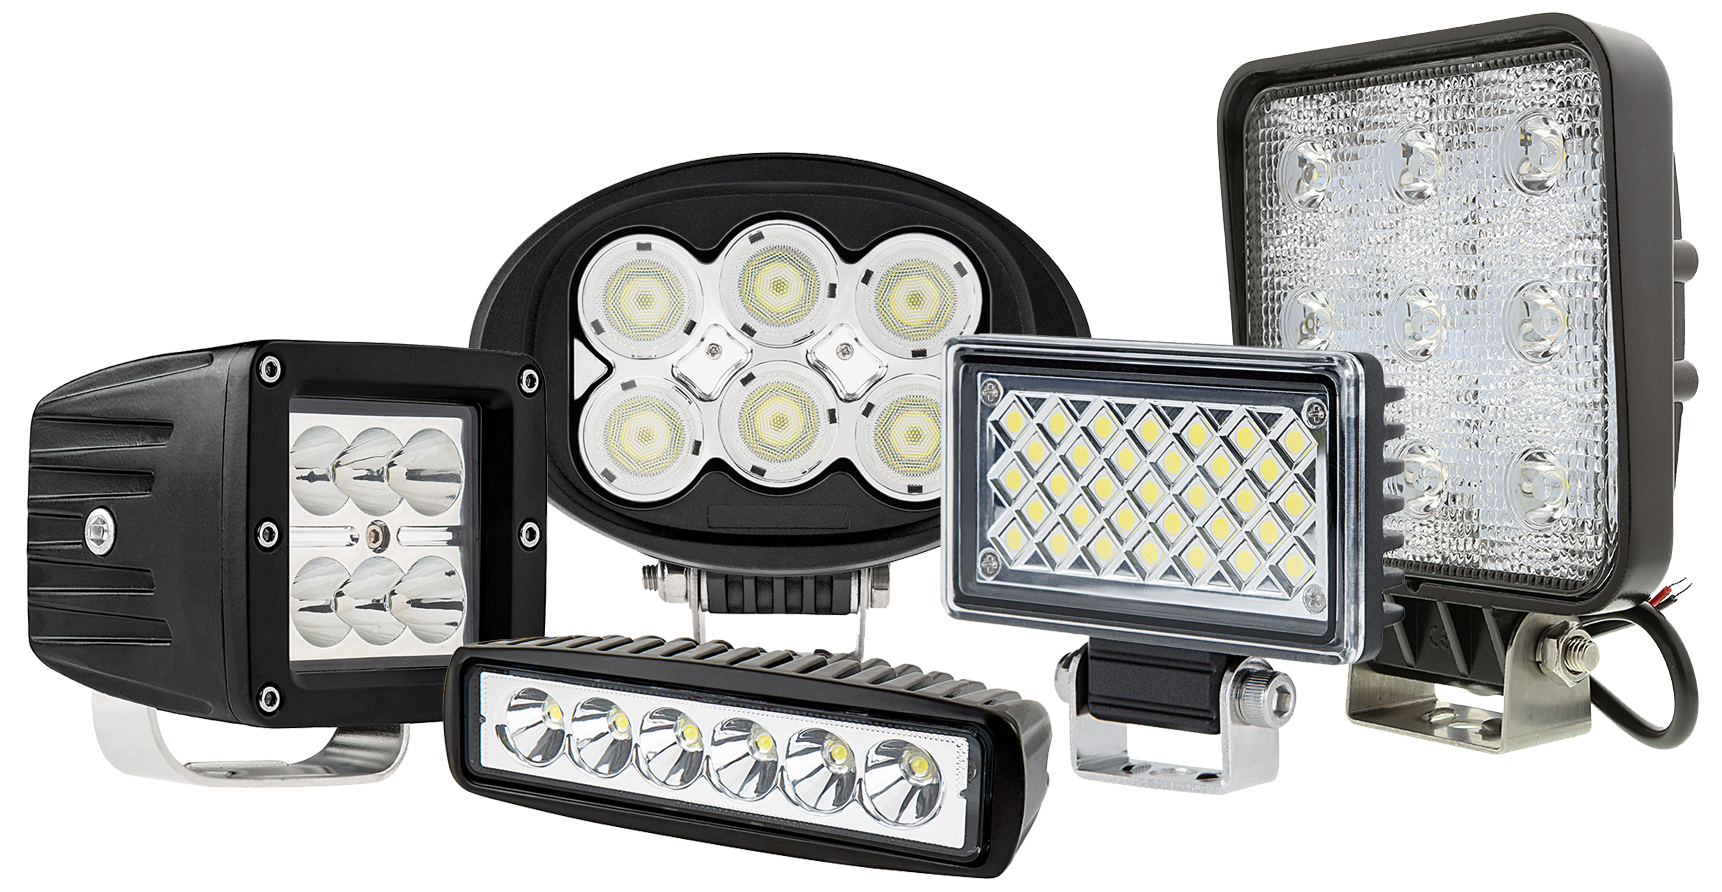 LED hunting lights - LED work lights